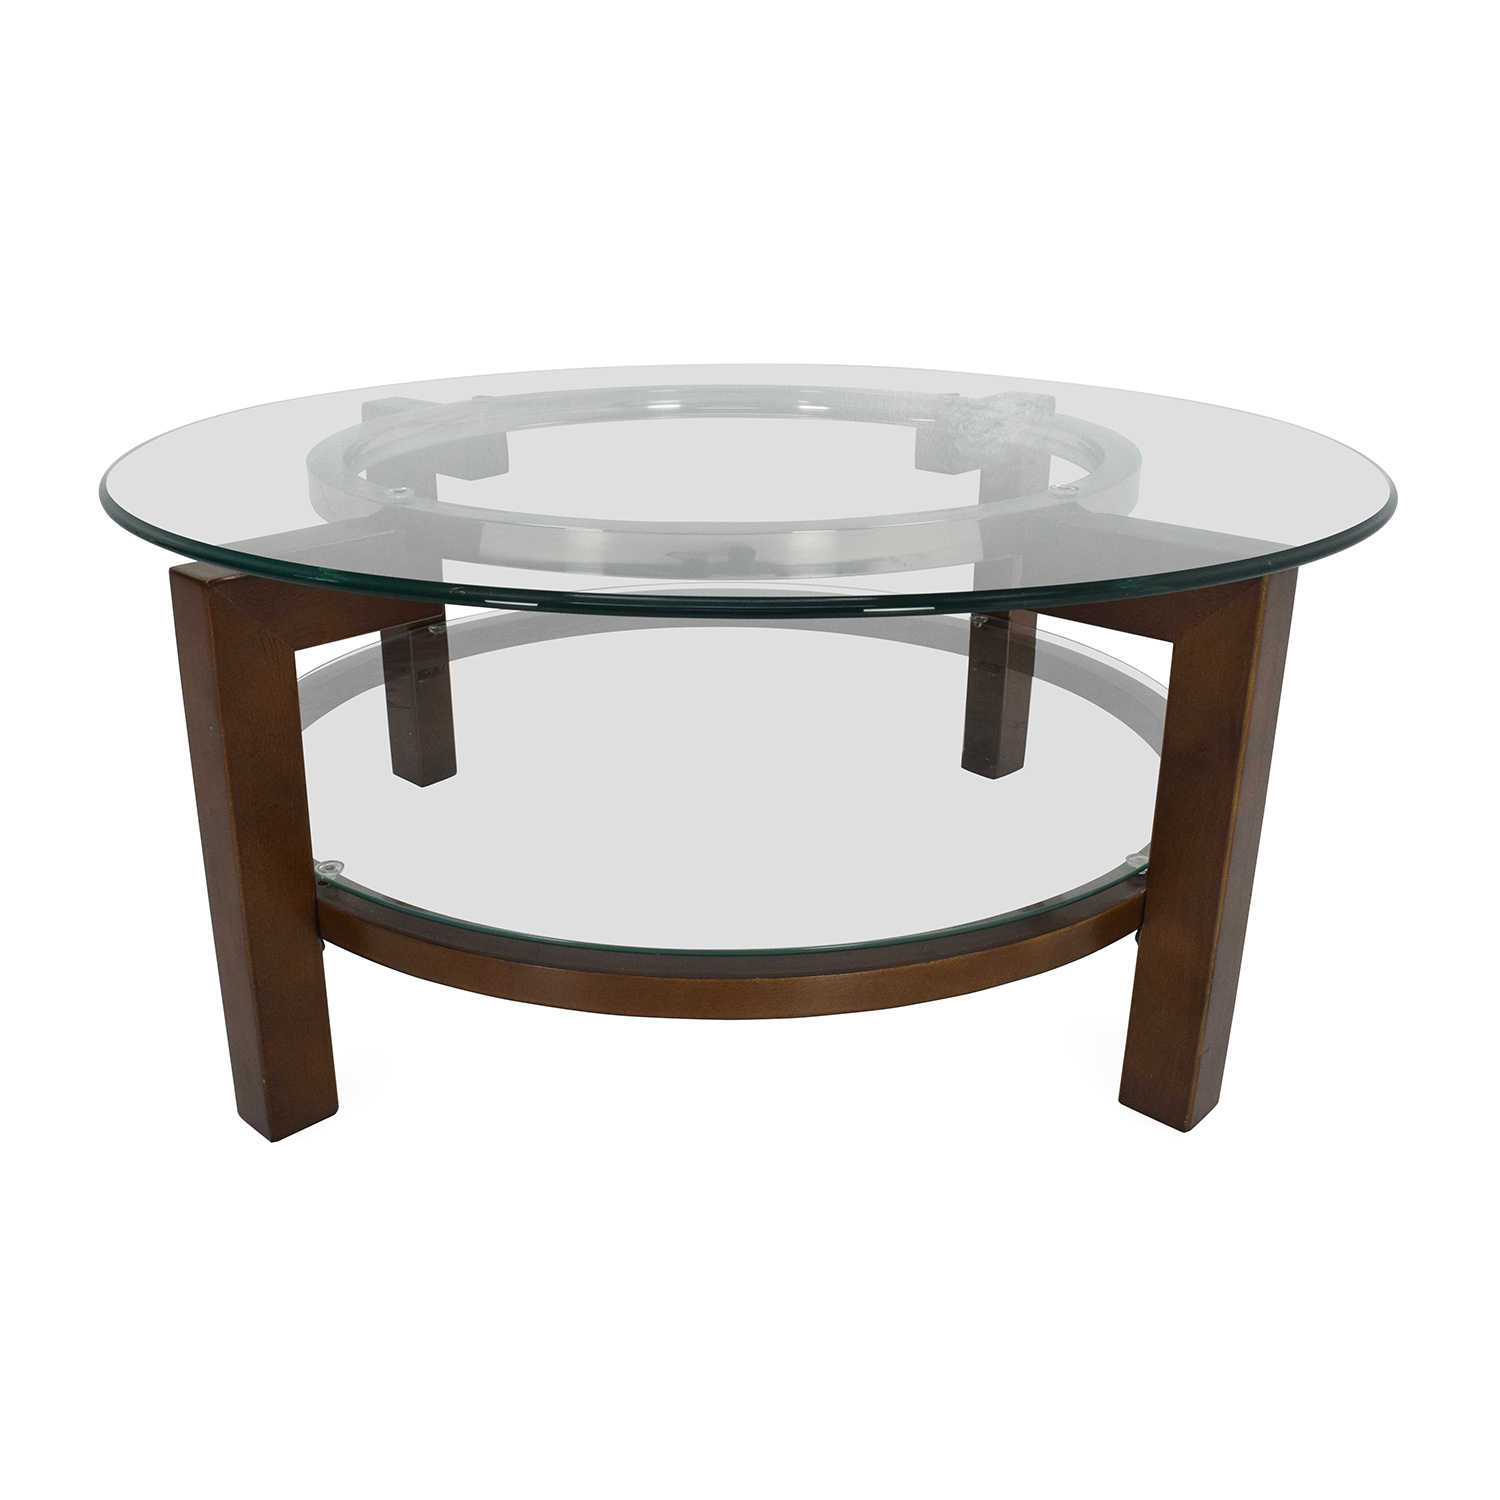 off macy glass top coffee table tables second hand macys and end diy four poster skinny sofa ikea espresso ethan allen tuscany bedroom set mid century modern furniture chairs